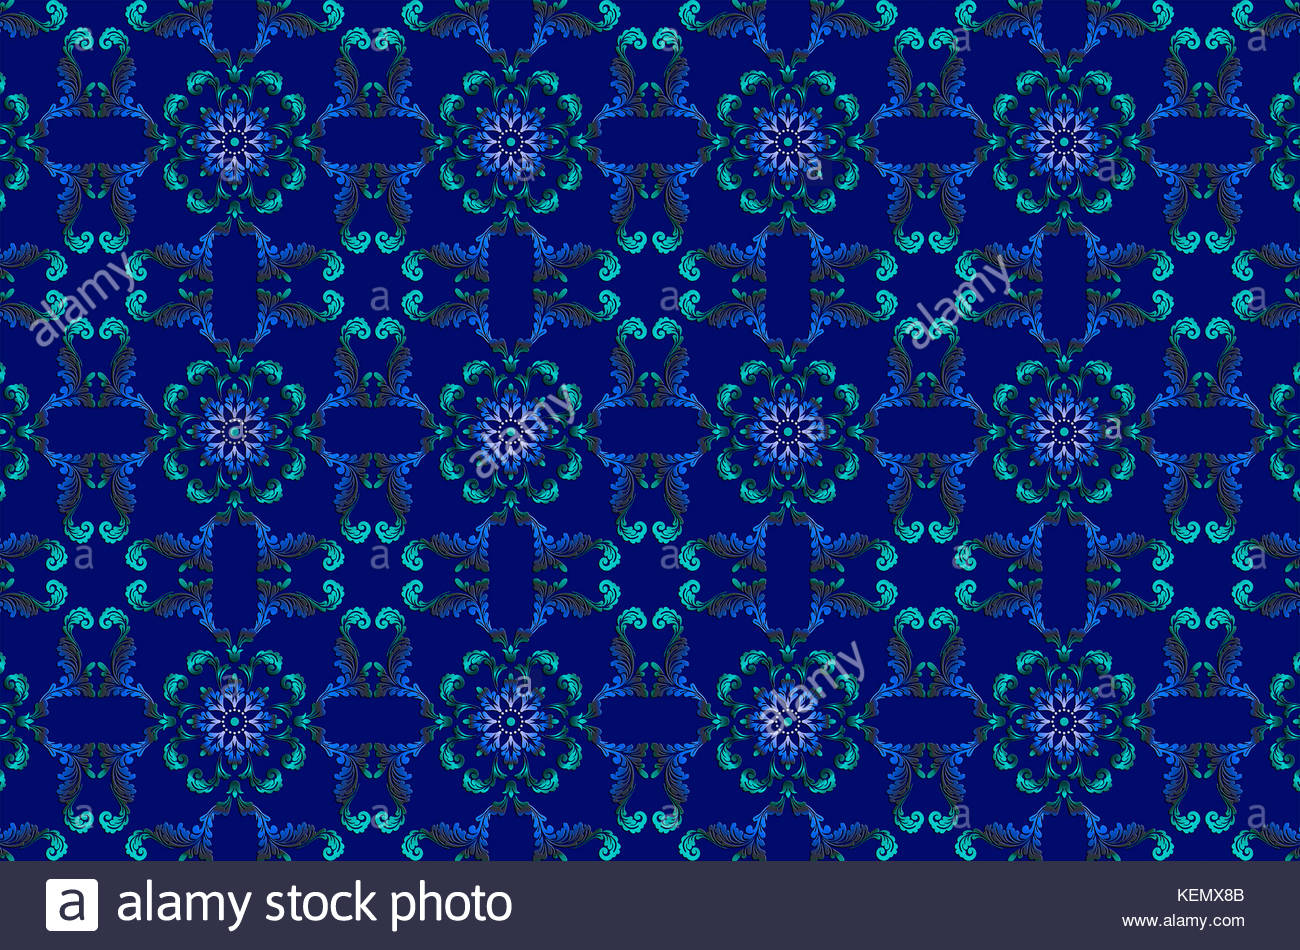 Ultramarine background from vintage blue and light turquoise 1300x950